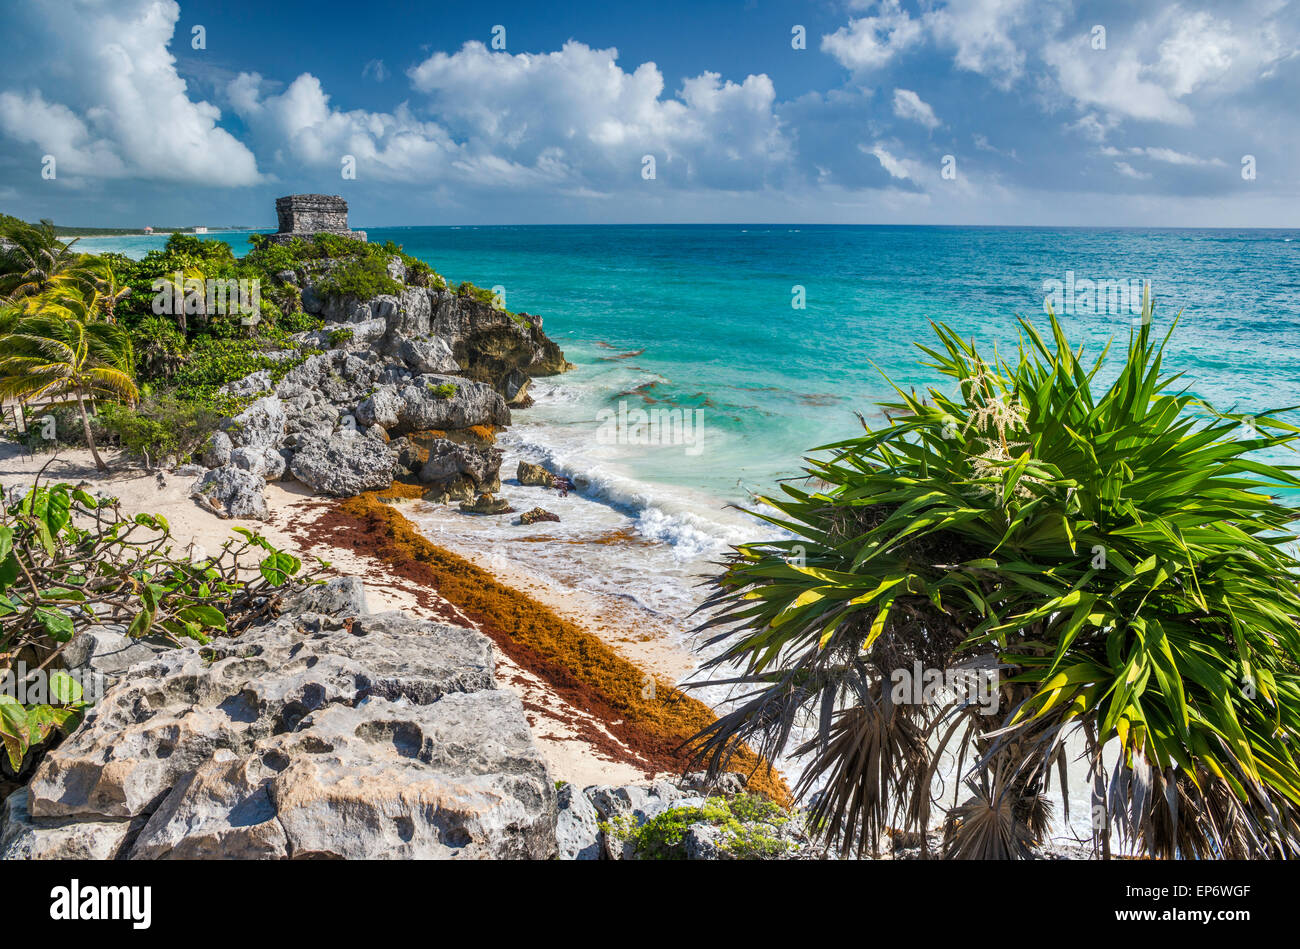 Templo del Dios del Viento (God of Winds Temple), Maya ruins at Tulum, Riviera Maya, Yucatan Peninsula, Quintana - Stock Image